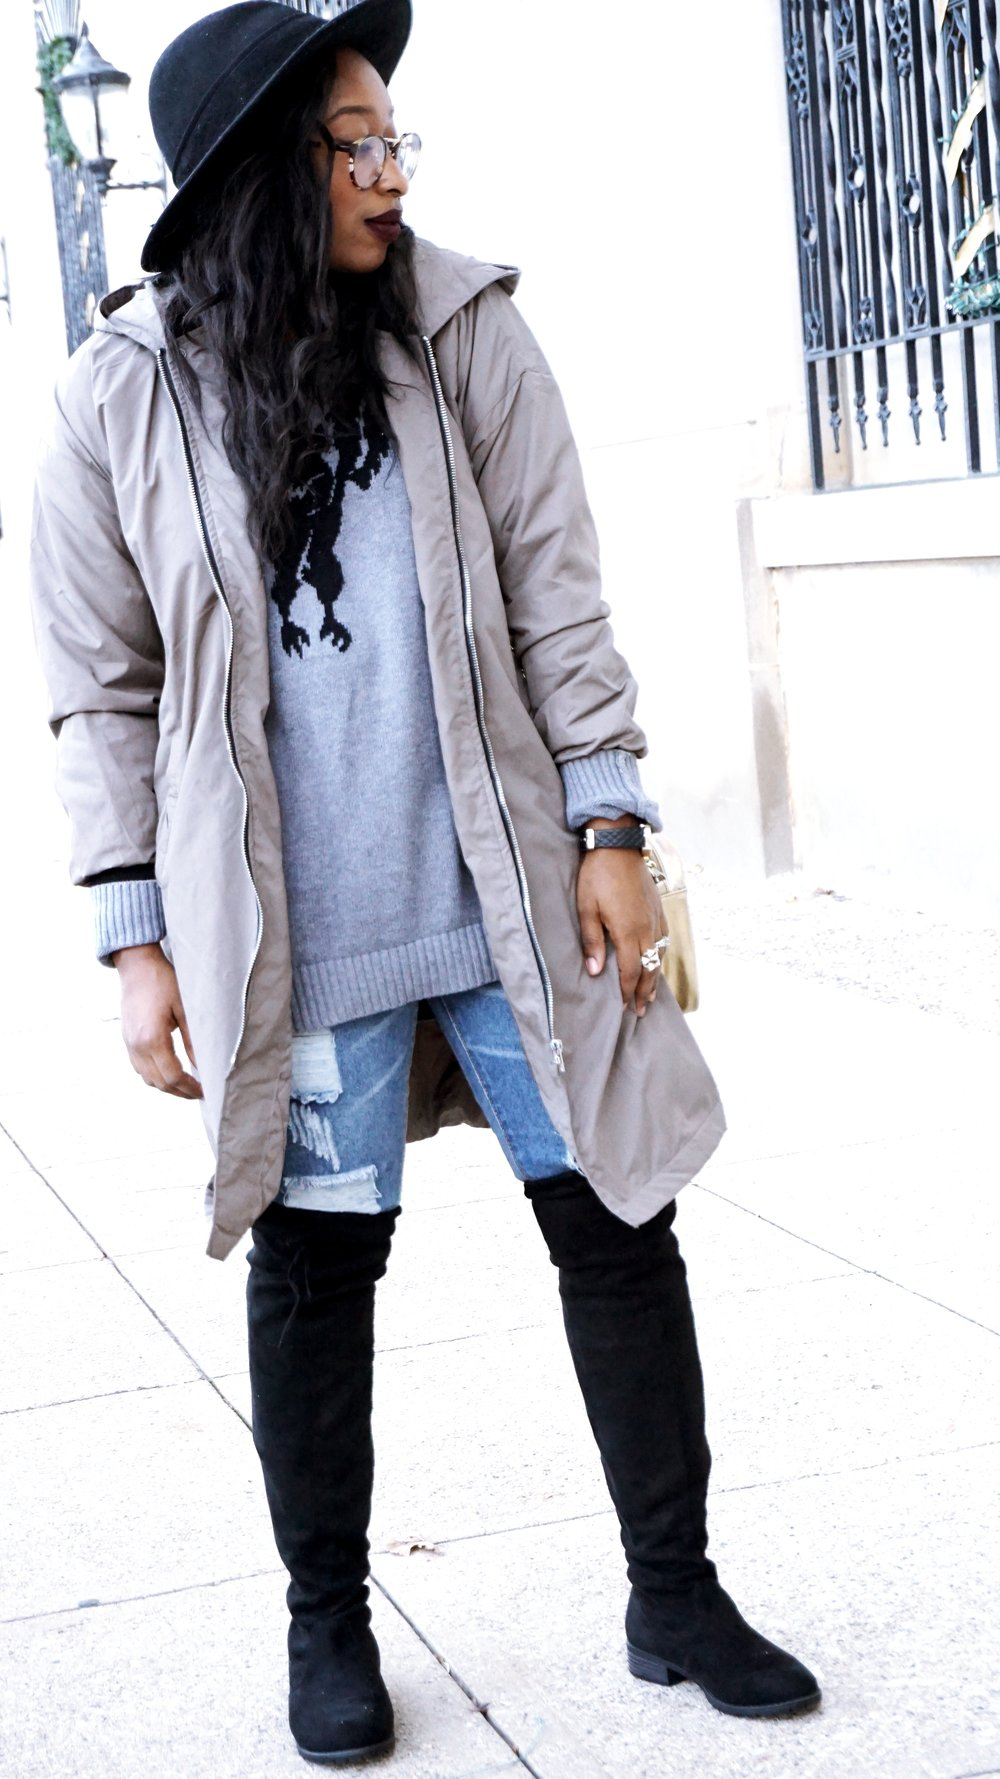 How To Style a Oversized Bomber Jacket